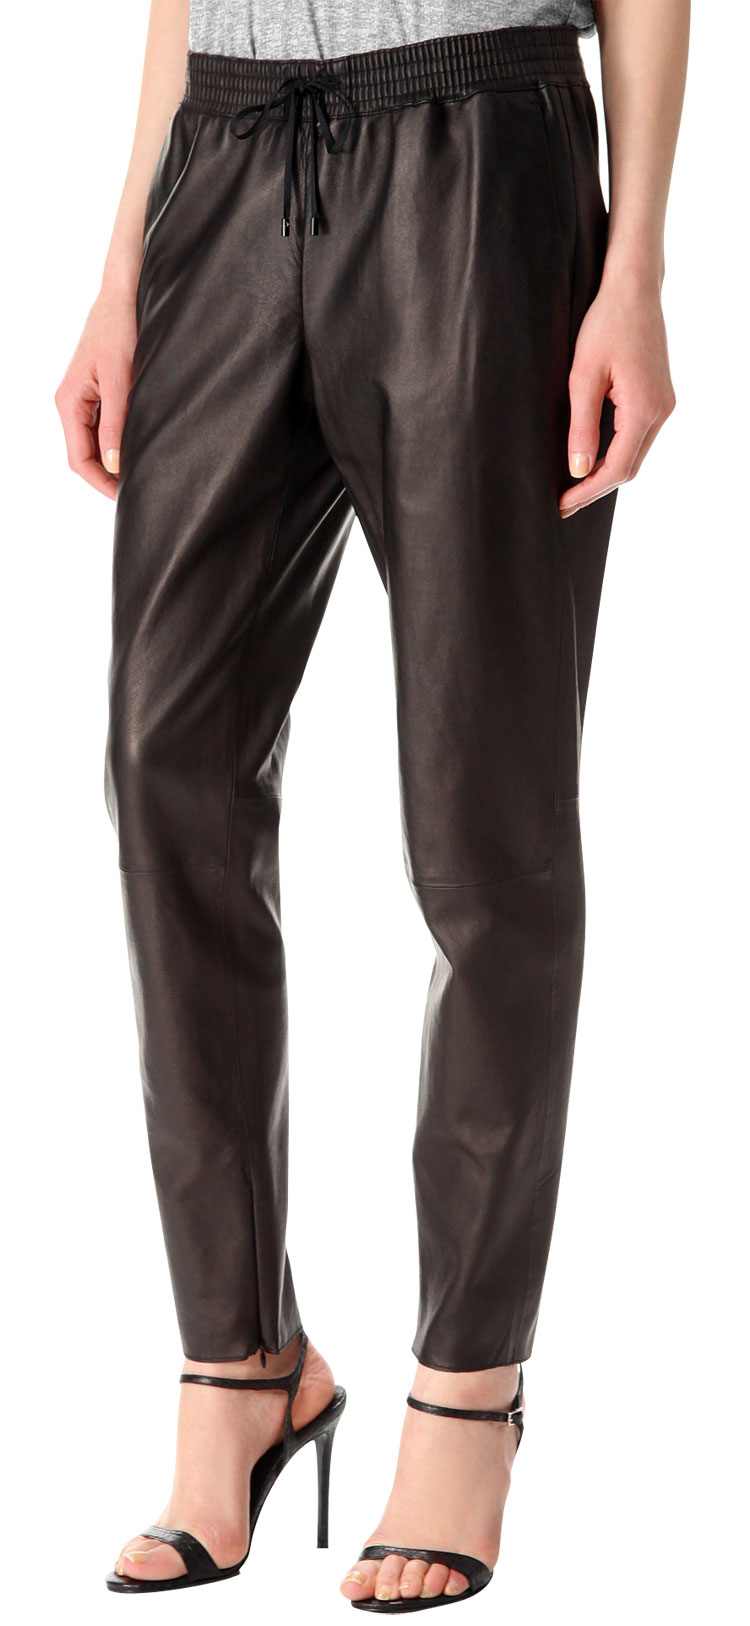 Find great deals on eBay for leather jogger pants. Shop with confidence.